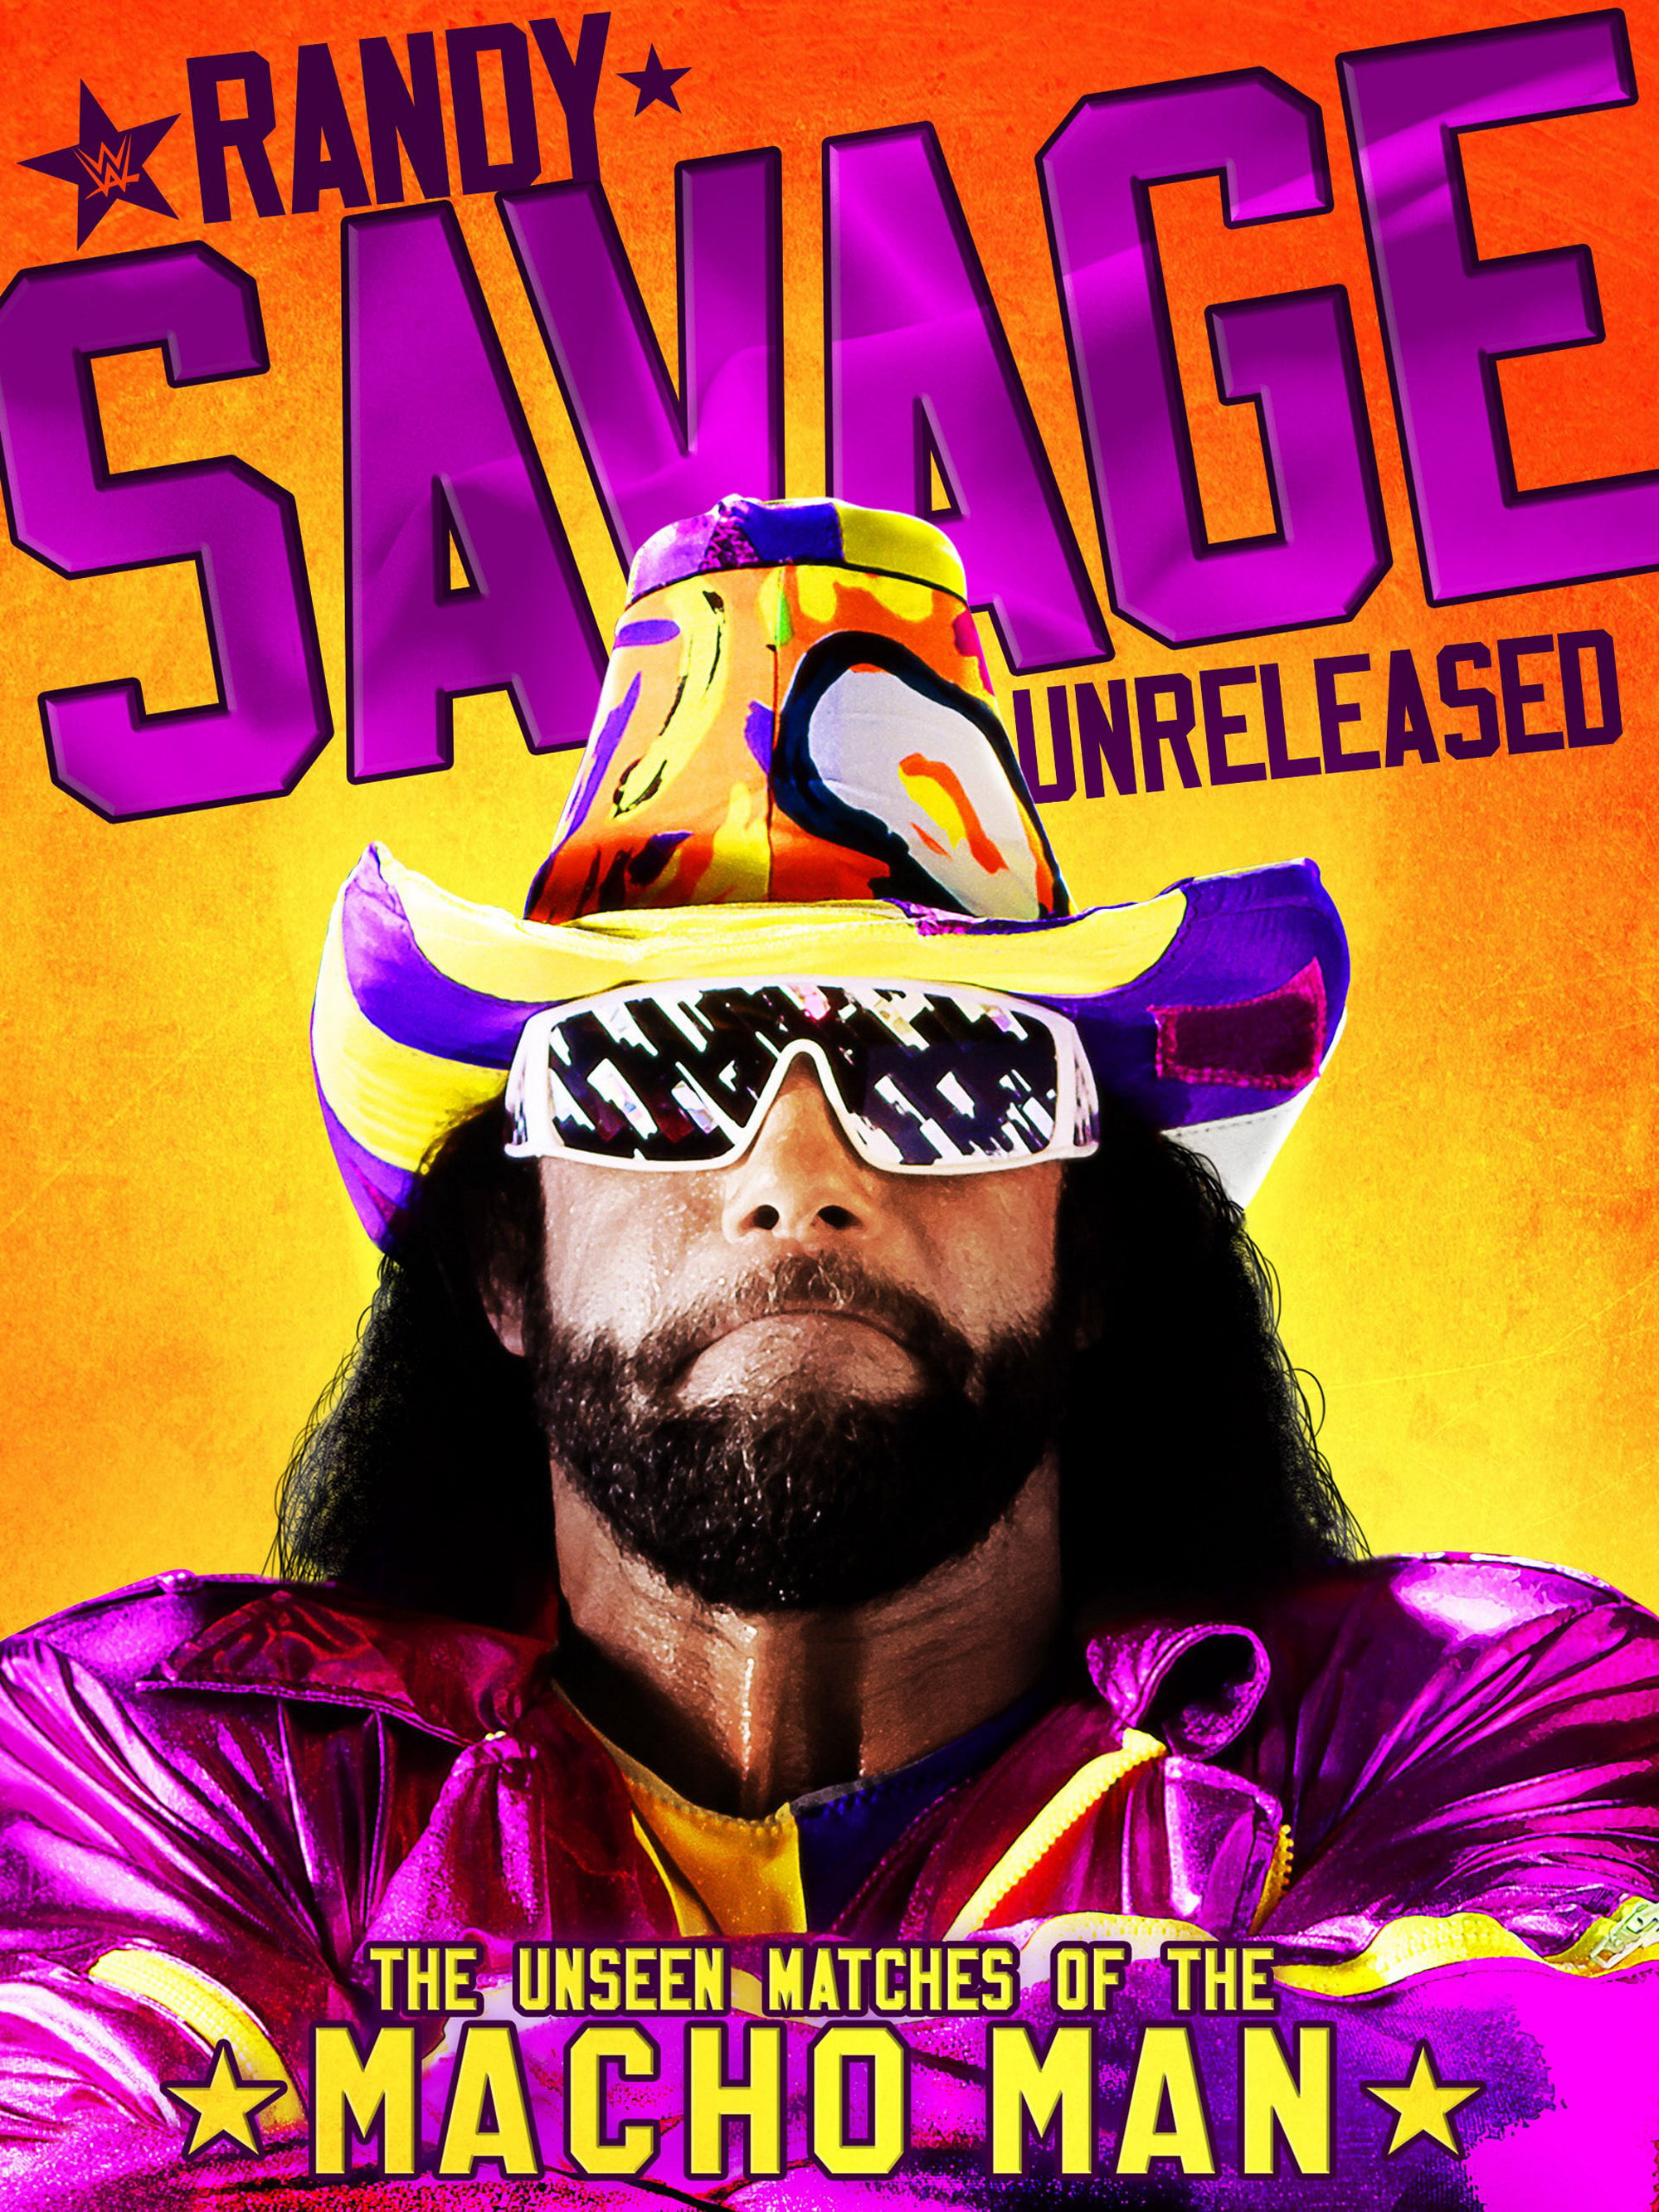 WWE: Randy Savage Unreleased: The Unseen Matches of The Macho Man (DVD) by